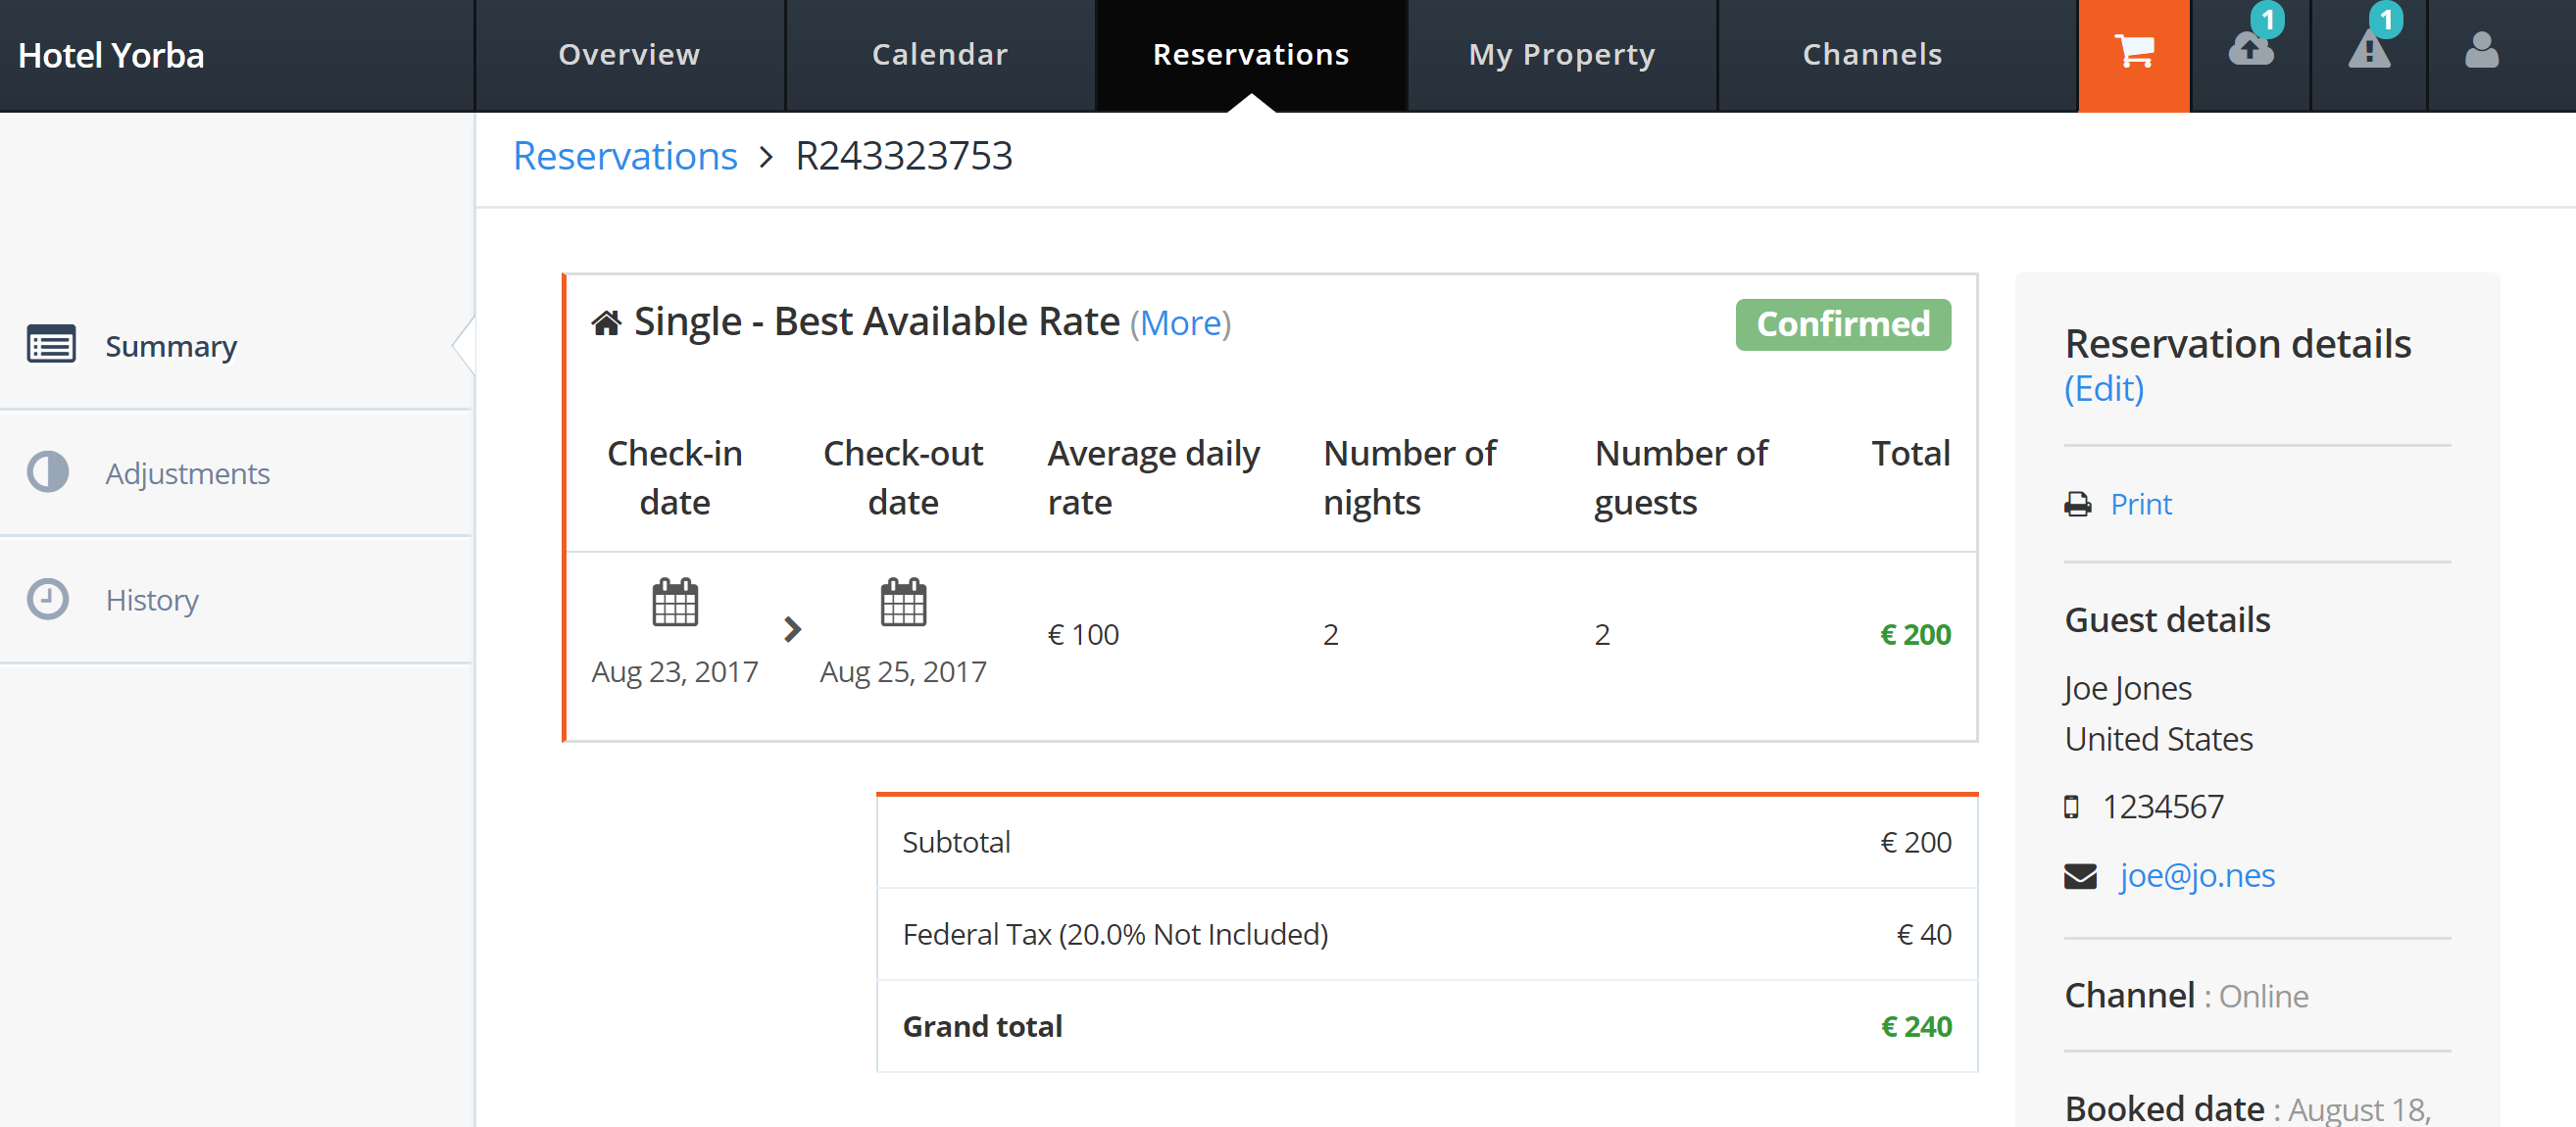 MyHotelCRS.com.com Click 'view' to view the details for the new reservation booking updated to 'Confirmed' in MyHotelCRS.com's portal